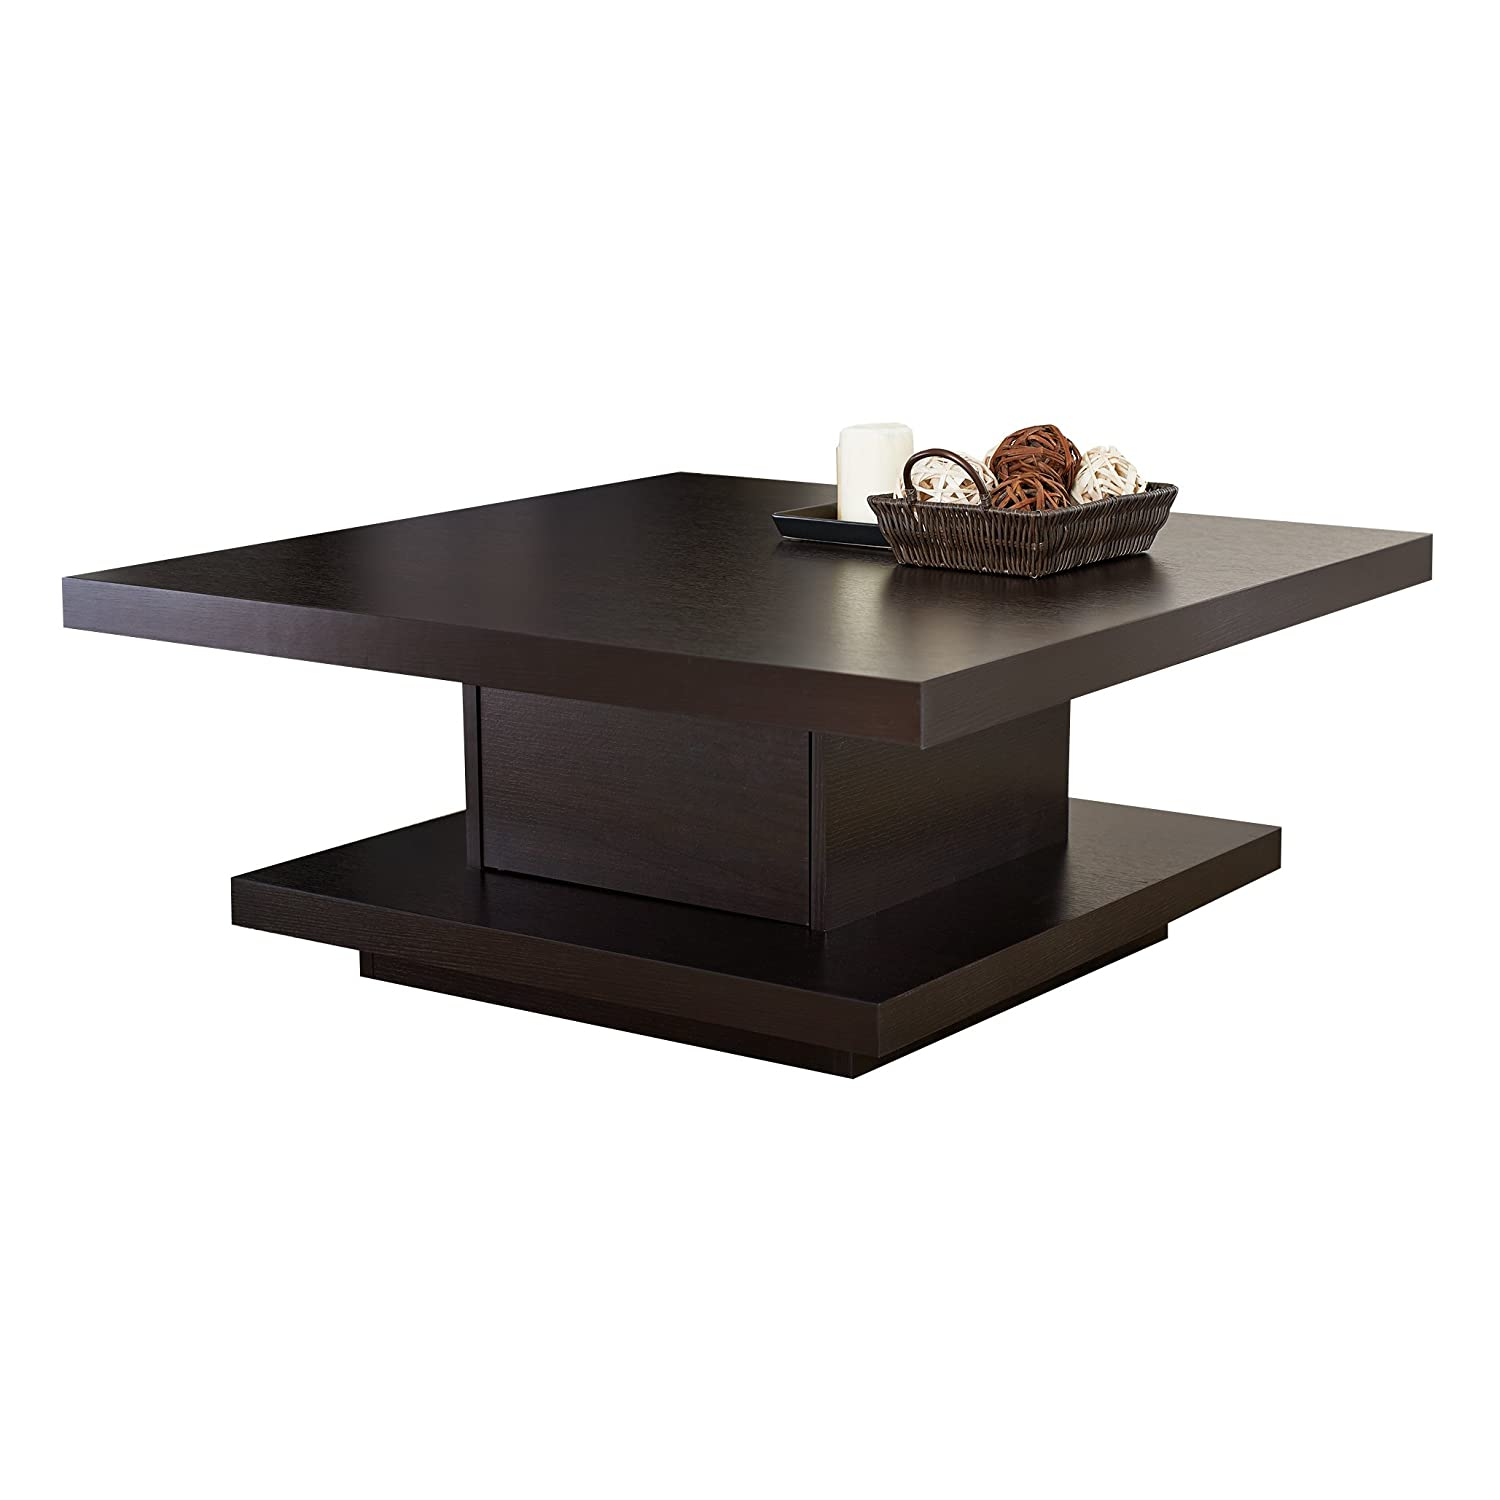 Amazon.com: IoHOMES Celio Square Coffee Table, Red Cocoa: Kitchen U0026 Dining